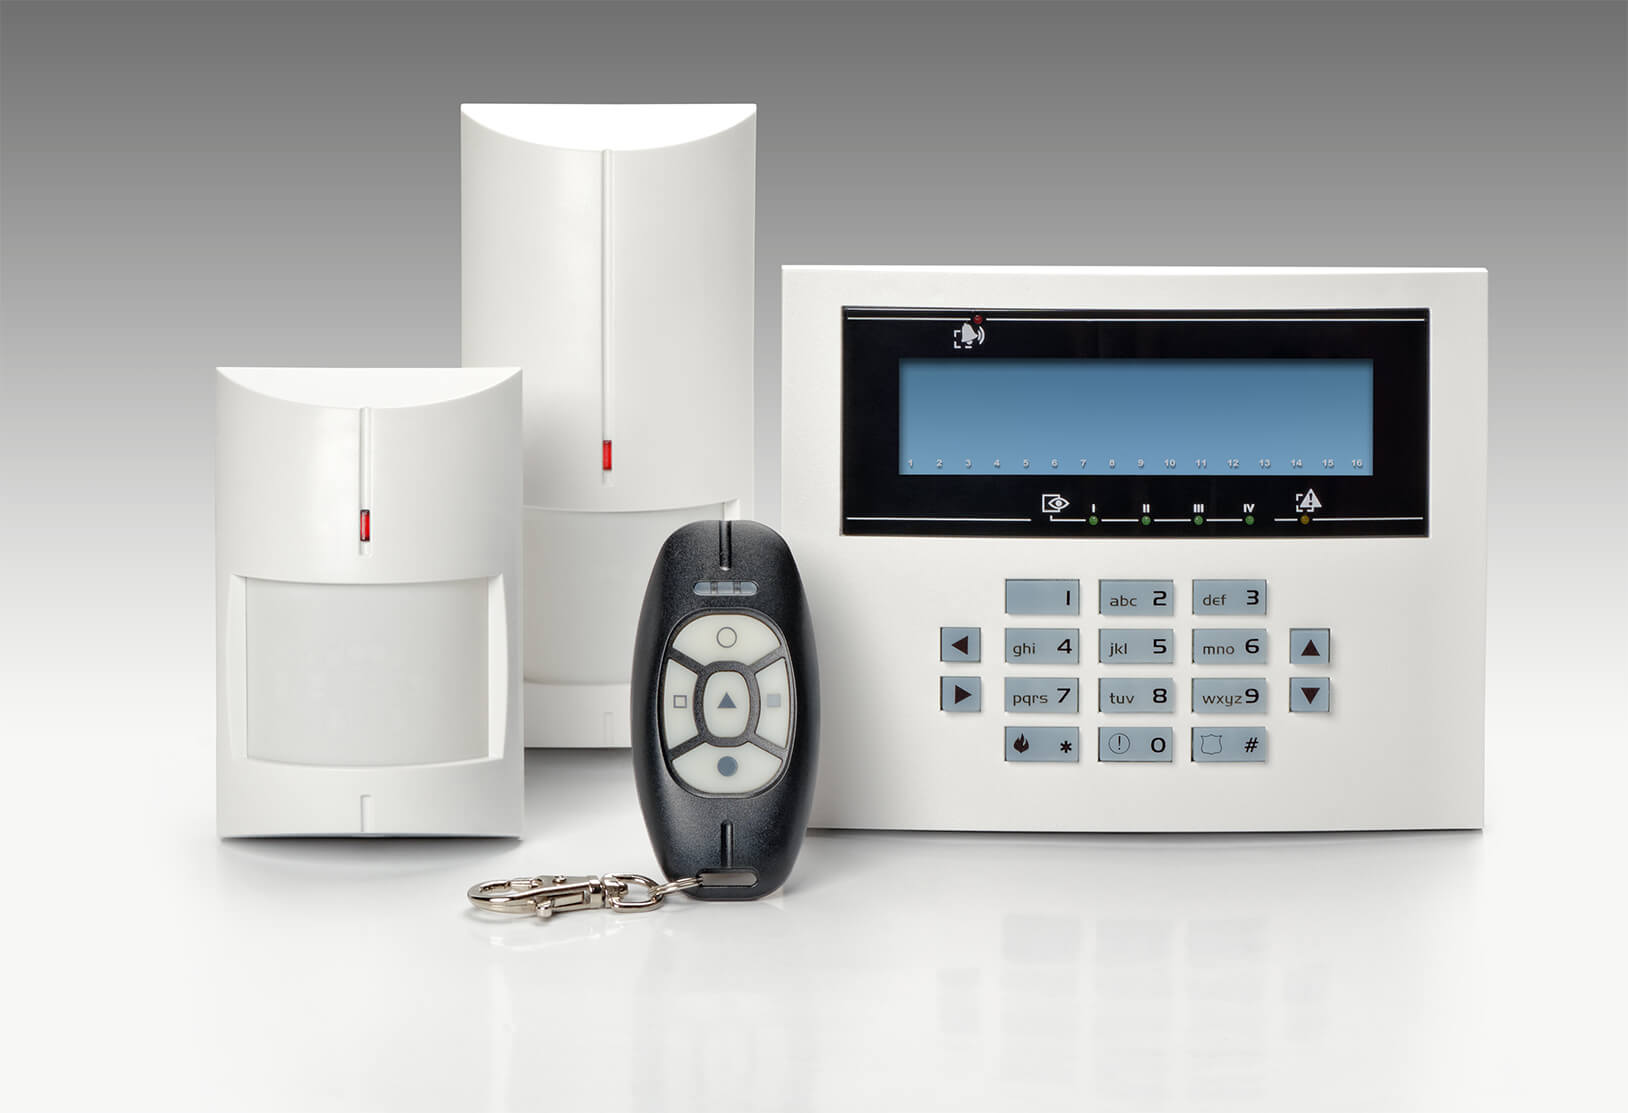 Commercial Burglar Alarms For Business in Chelsea SW3  - Local Chelsea SW3 burglar alarm company.Call 02078872244 - Dedicated to Safety & Security. Companies, shops and homes ..